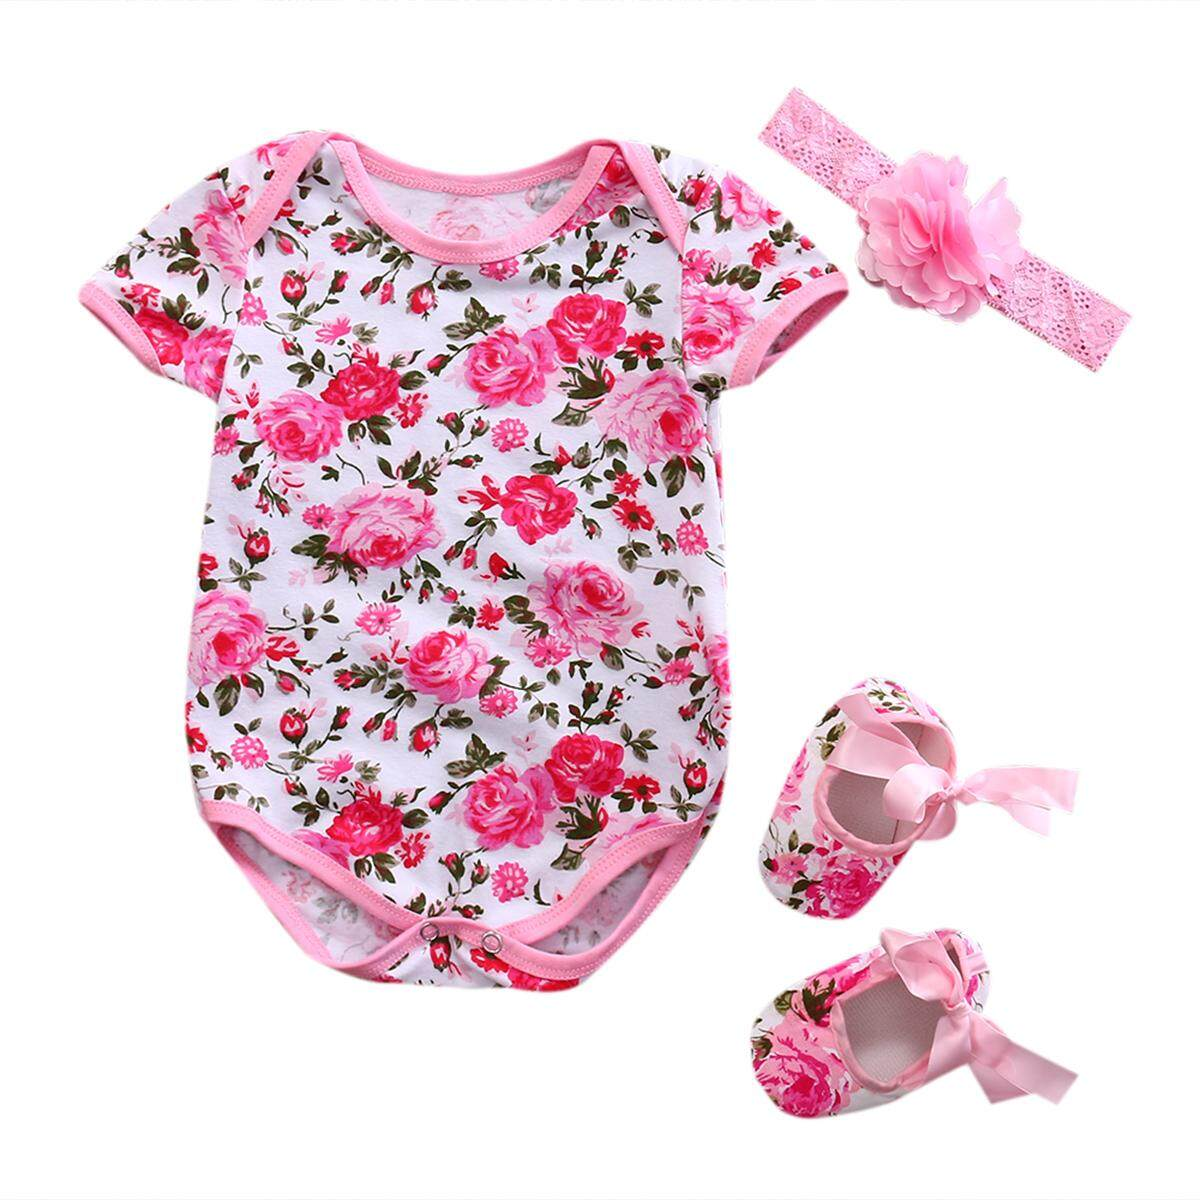 3pcs Newborn Infant Baby Girl Romper Jumpsuit+Shoe+Hairband 3Pcs Outfits Set Clothes